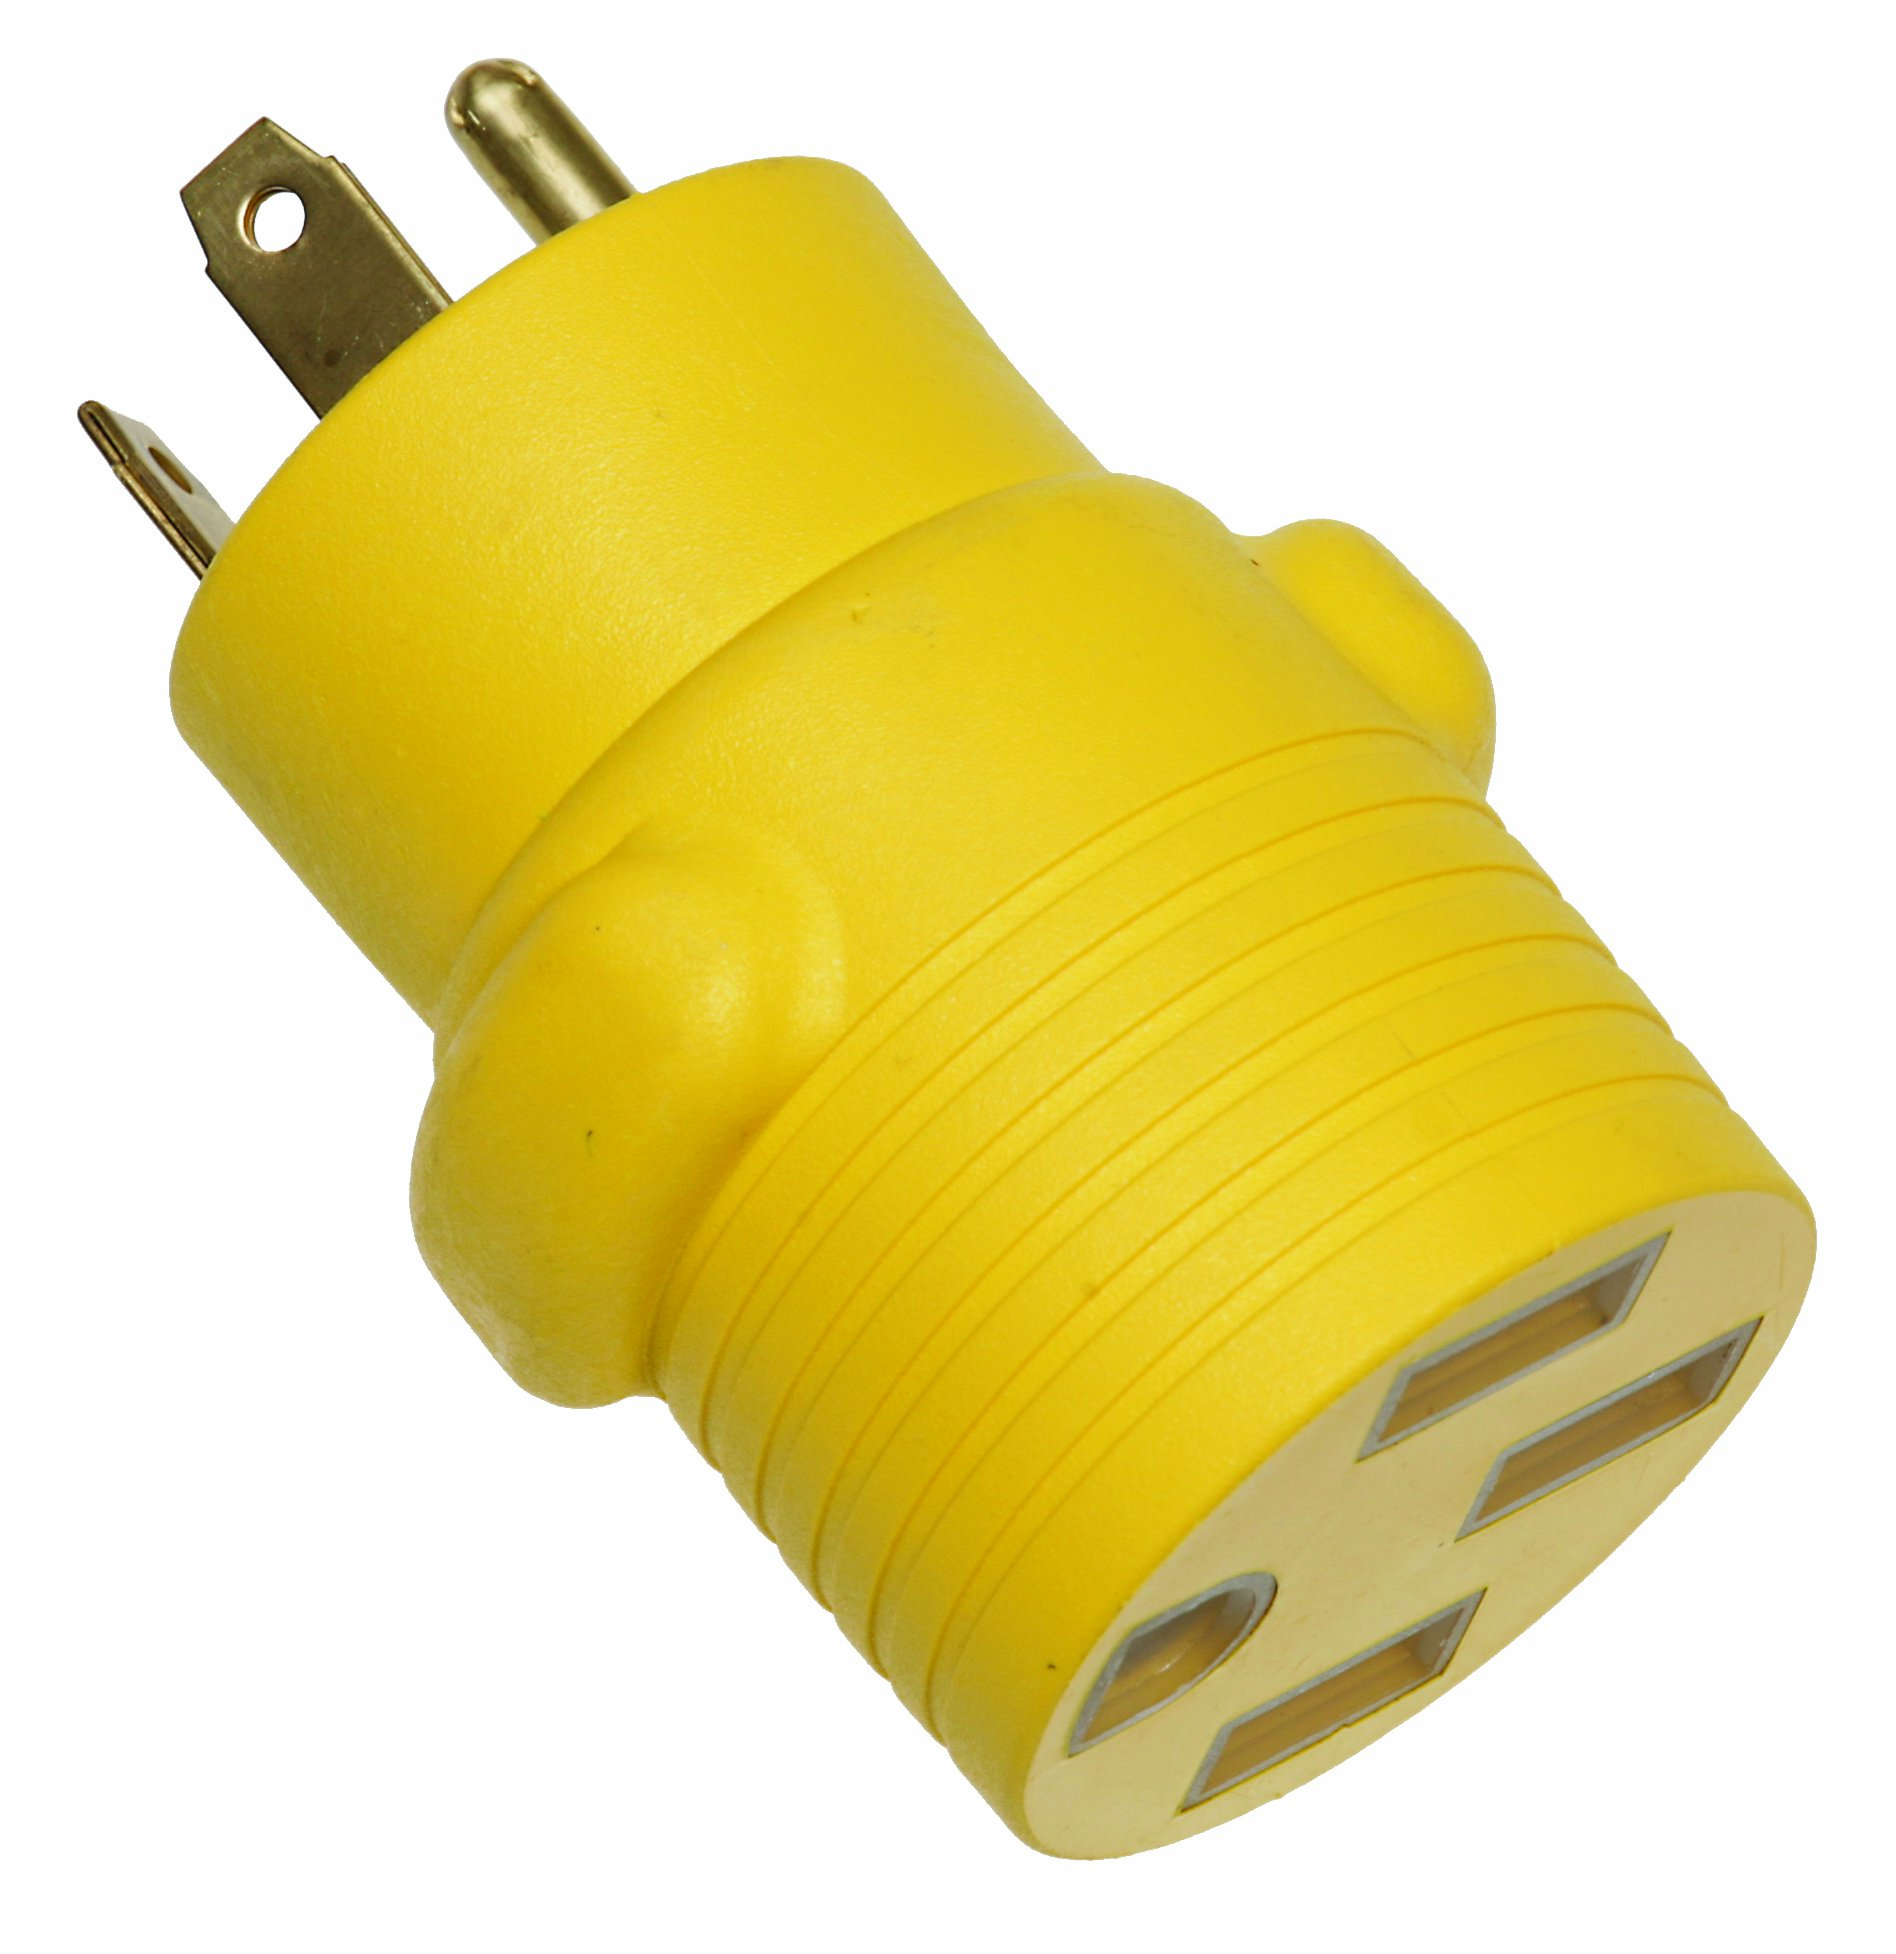 Arcon 14014 Round Generator Power Adapter, 50-Amp Female to 30-Amp Male by Arcon (Image #1)